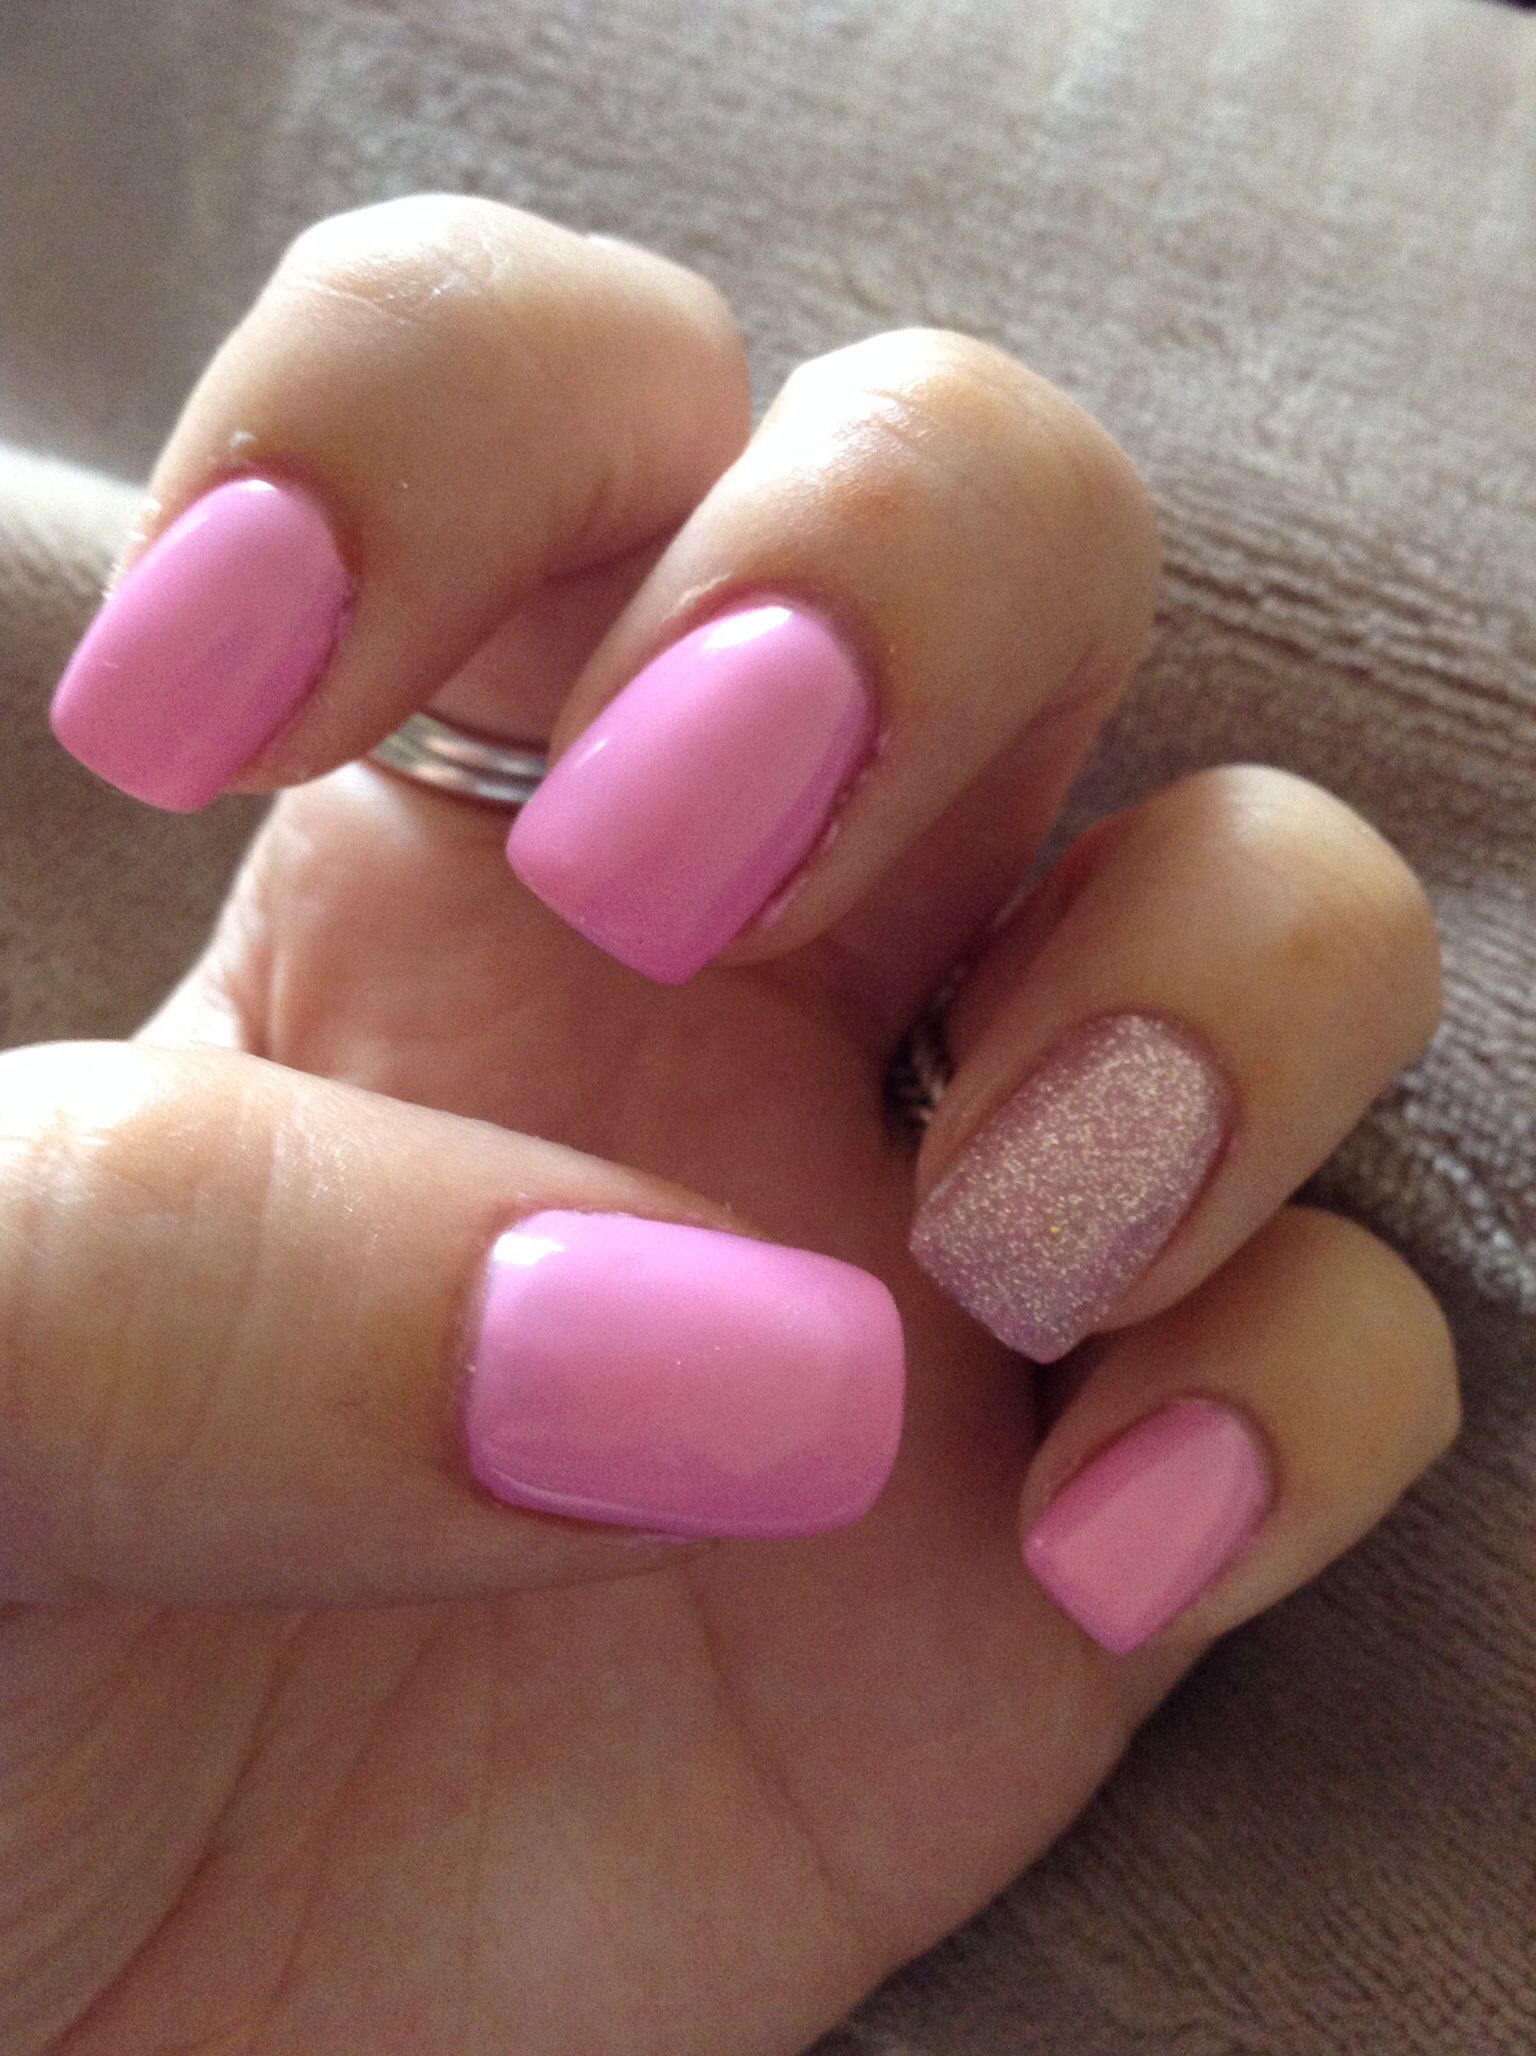 Bubble gum pink acrylic nails with sparkly accent | Pink ...